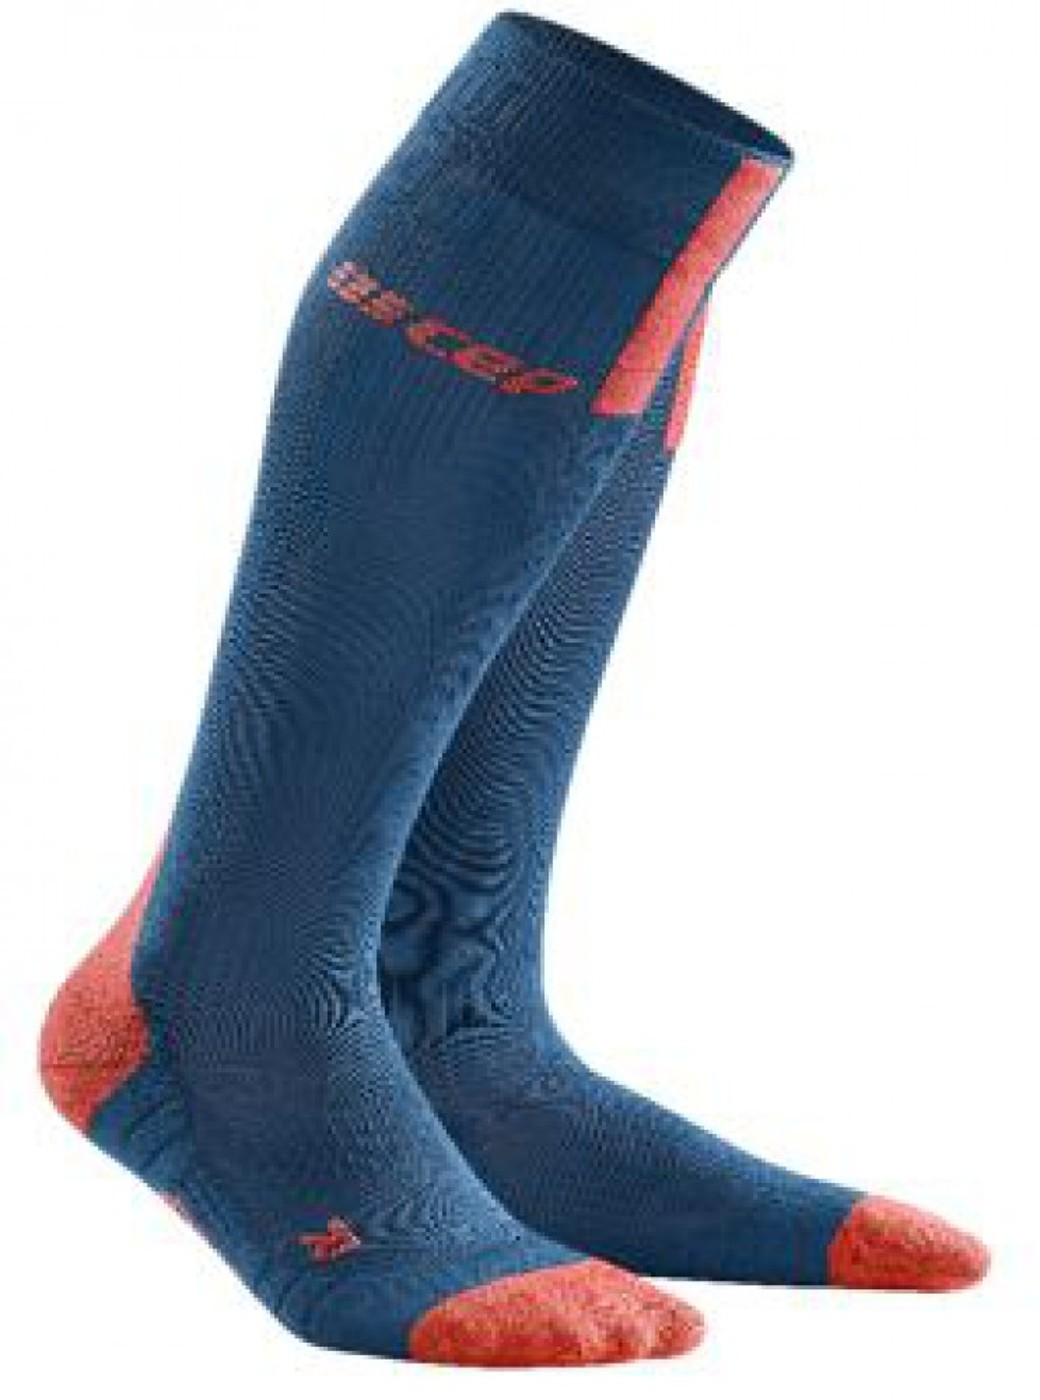 CEP knee high run socks 3.0 - Damen